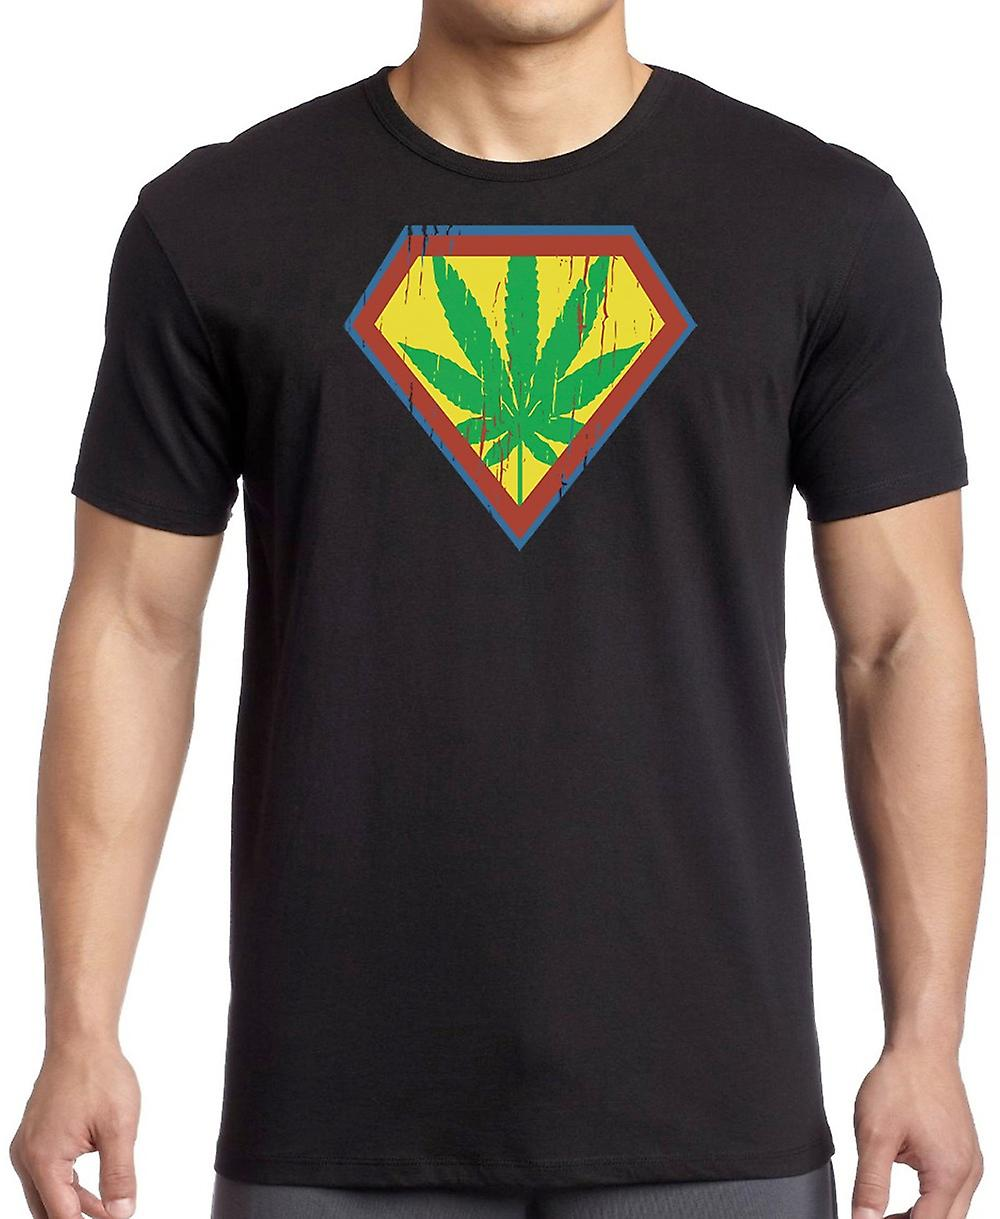 Superweed - narcotico supereroe donne T Shirt